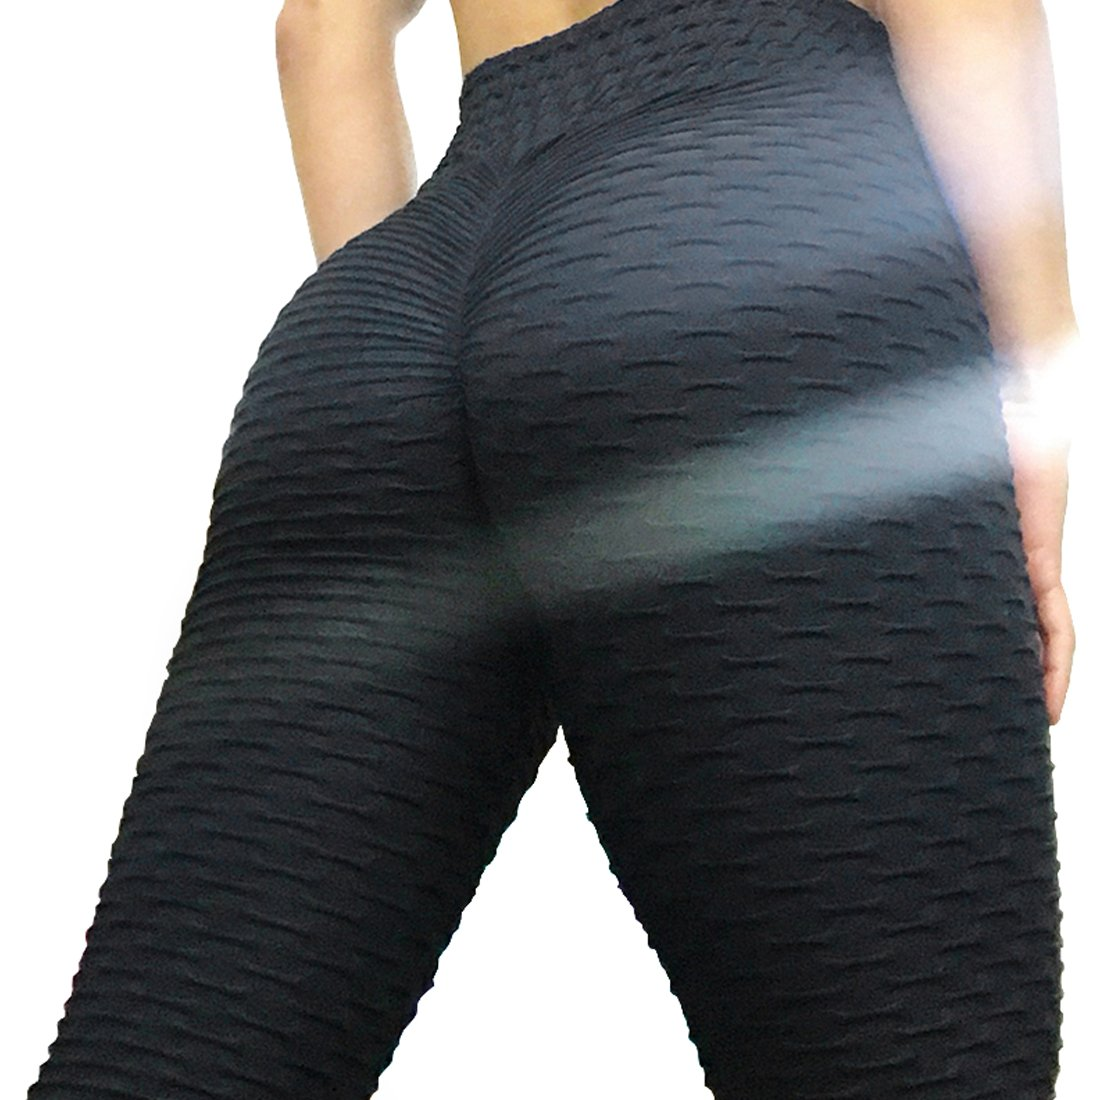 Womens Sport Yoga Pants Stretchy Skinny High Waisted Ruched Butt Lifting Long Workout Leggings (M, Black)